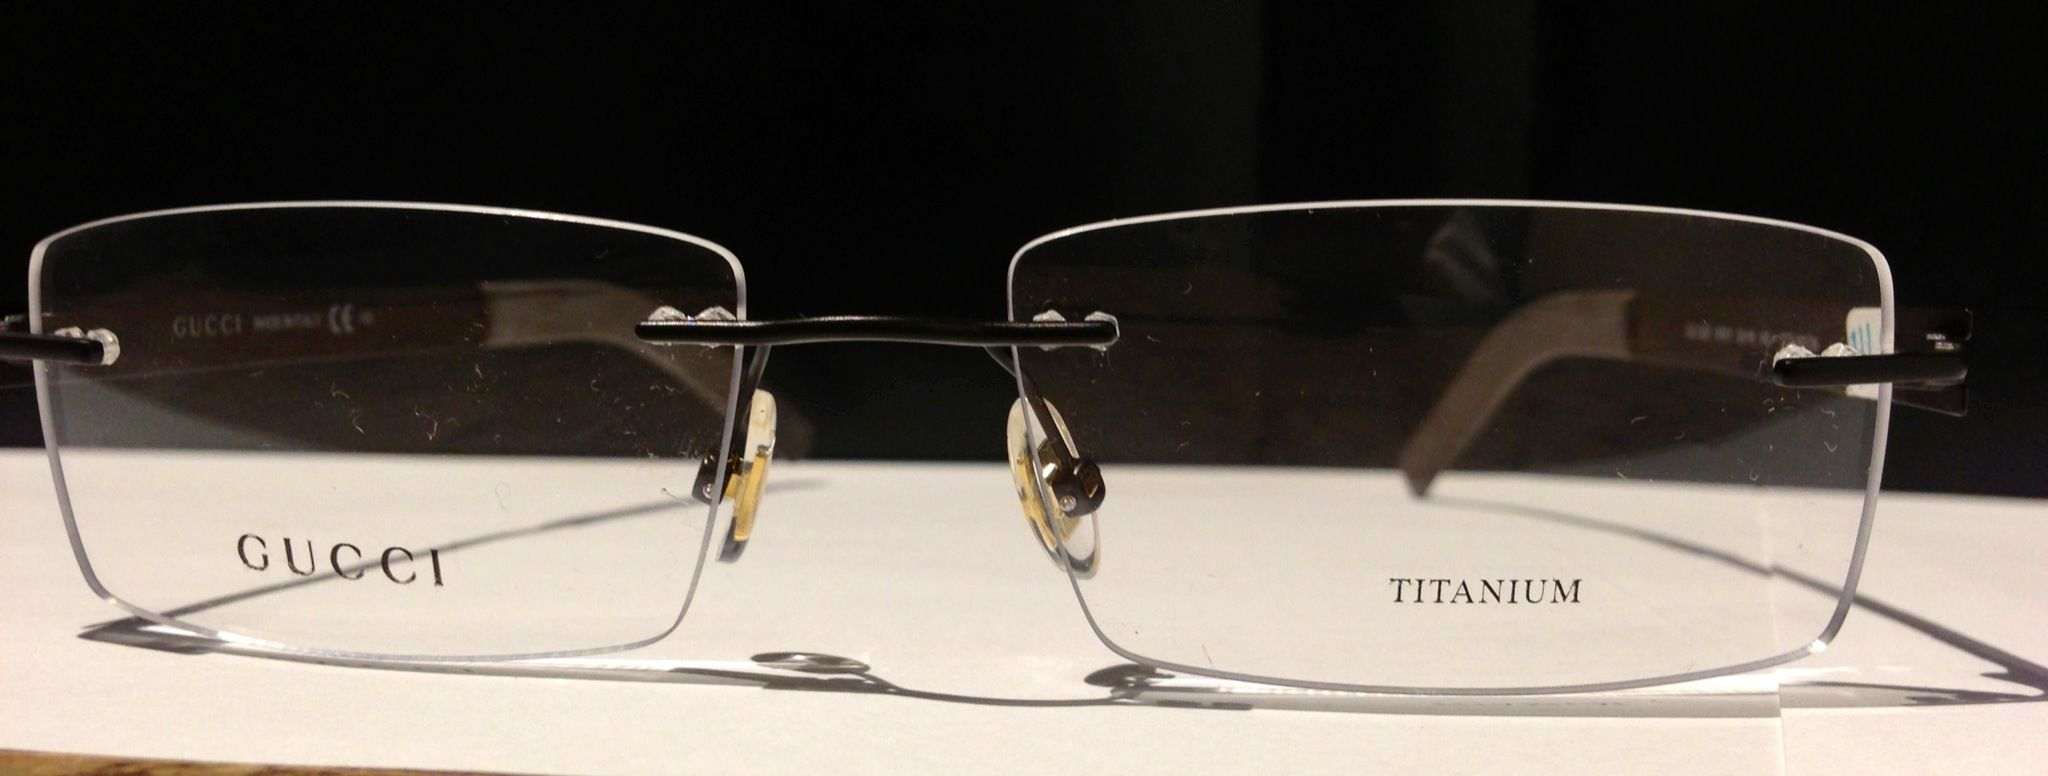 a71a791a885b0 Frameless Gucci Titanium. Find this Pin and more on Our Frames ...